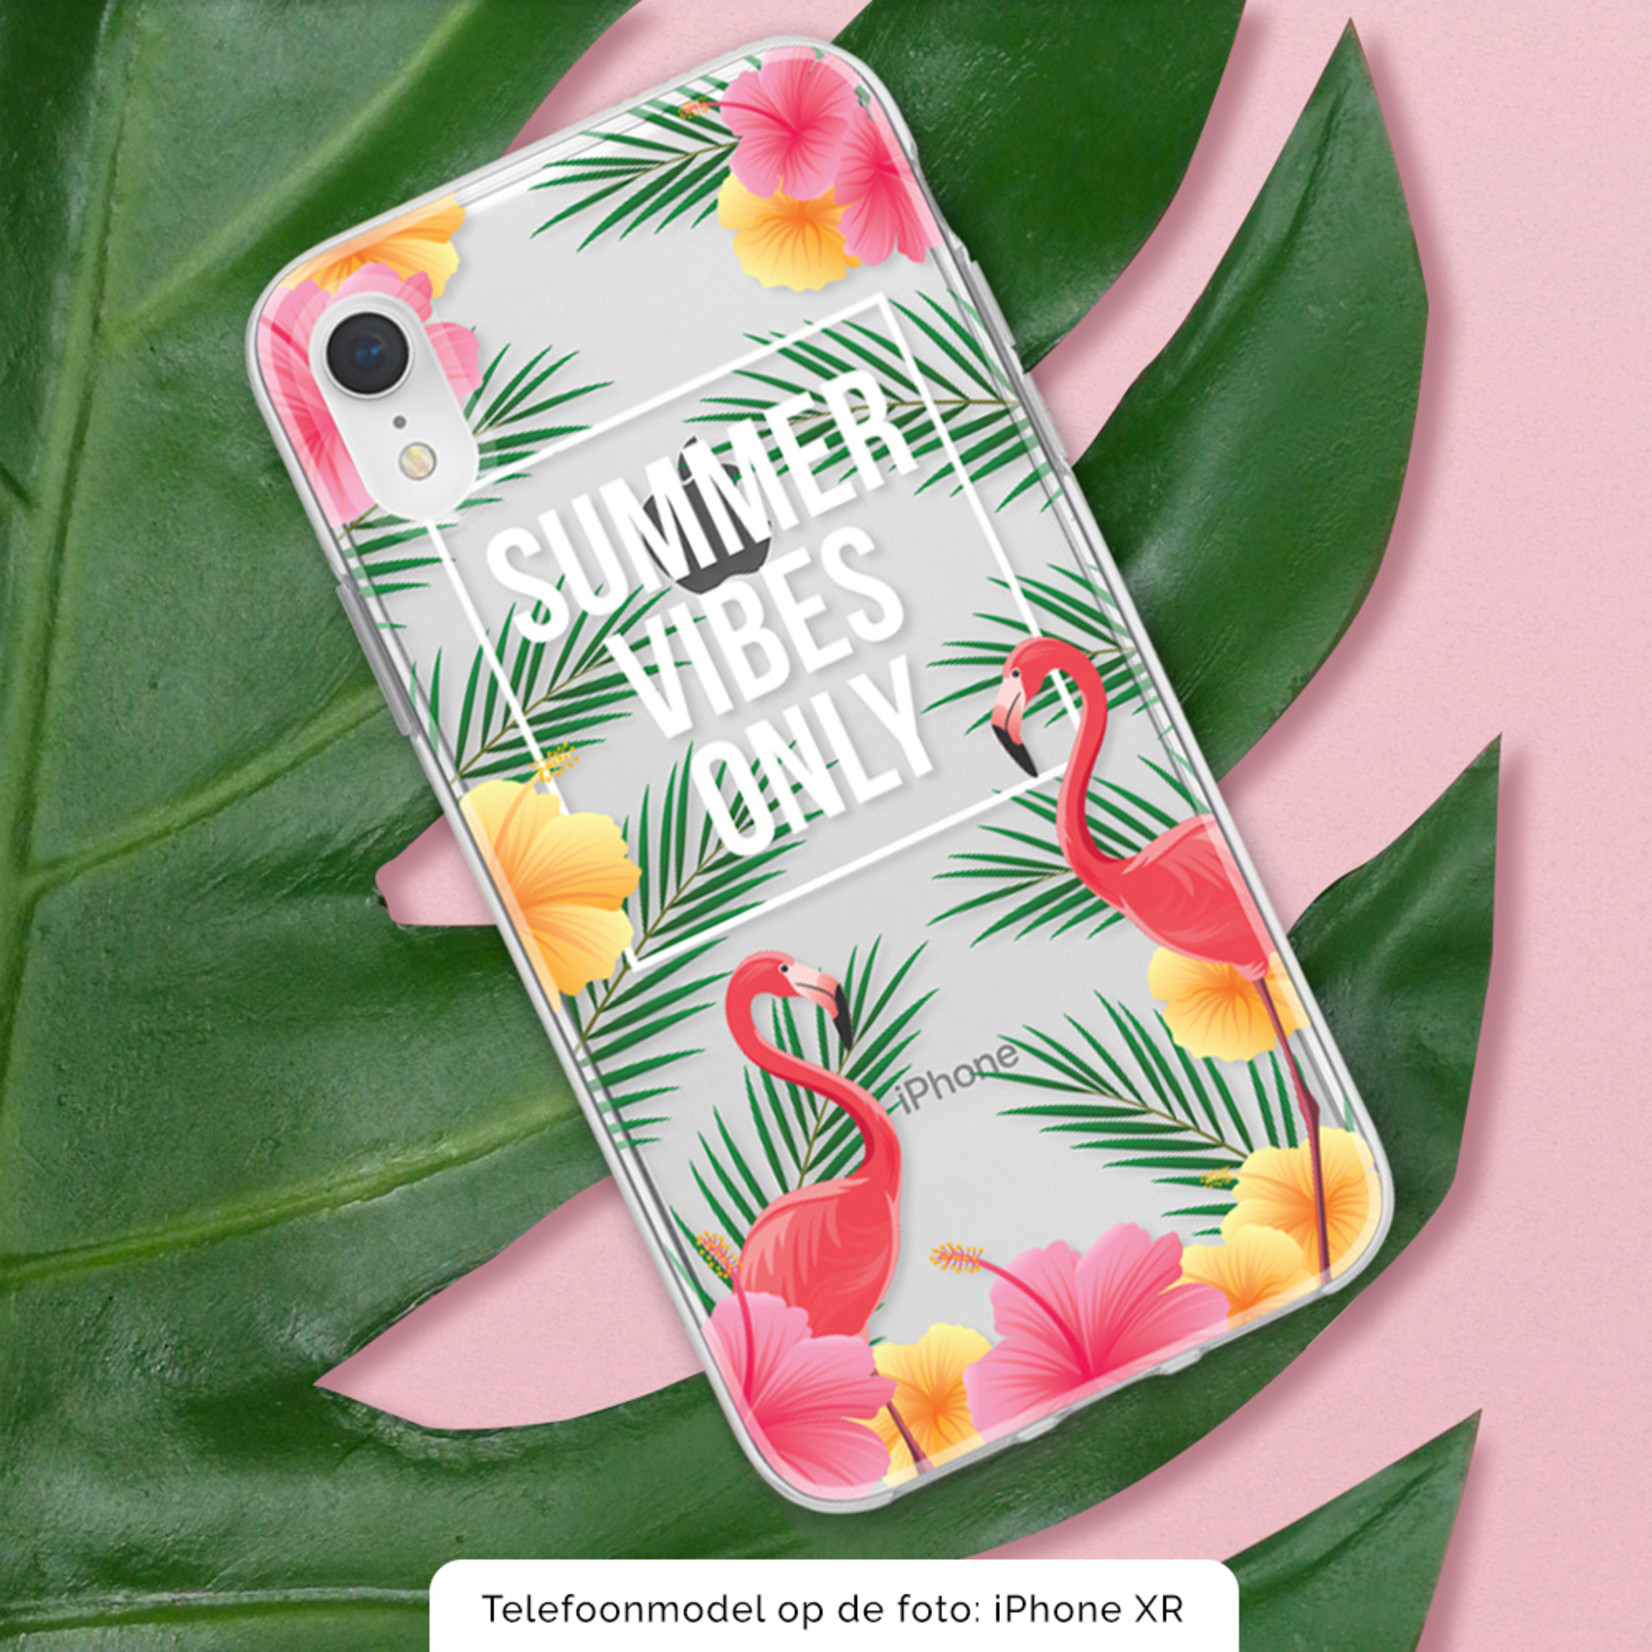 FOONCASE IPhone 12 Pro Max Phone Case - Summer Vibes Only